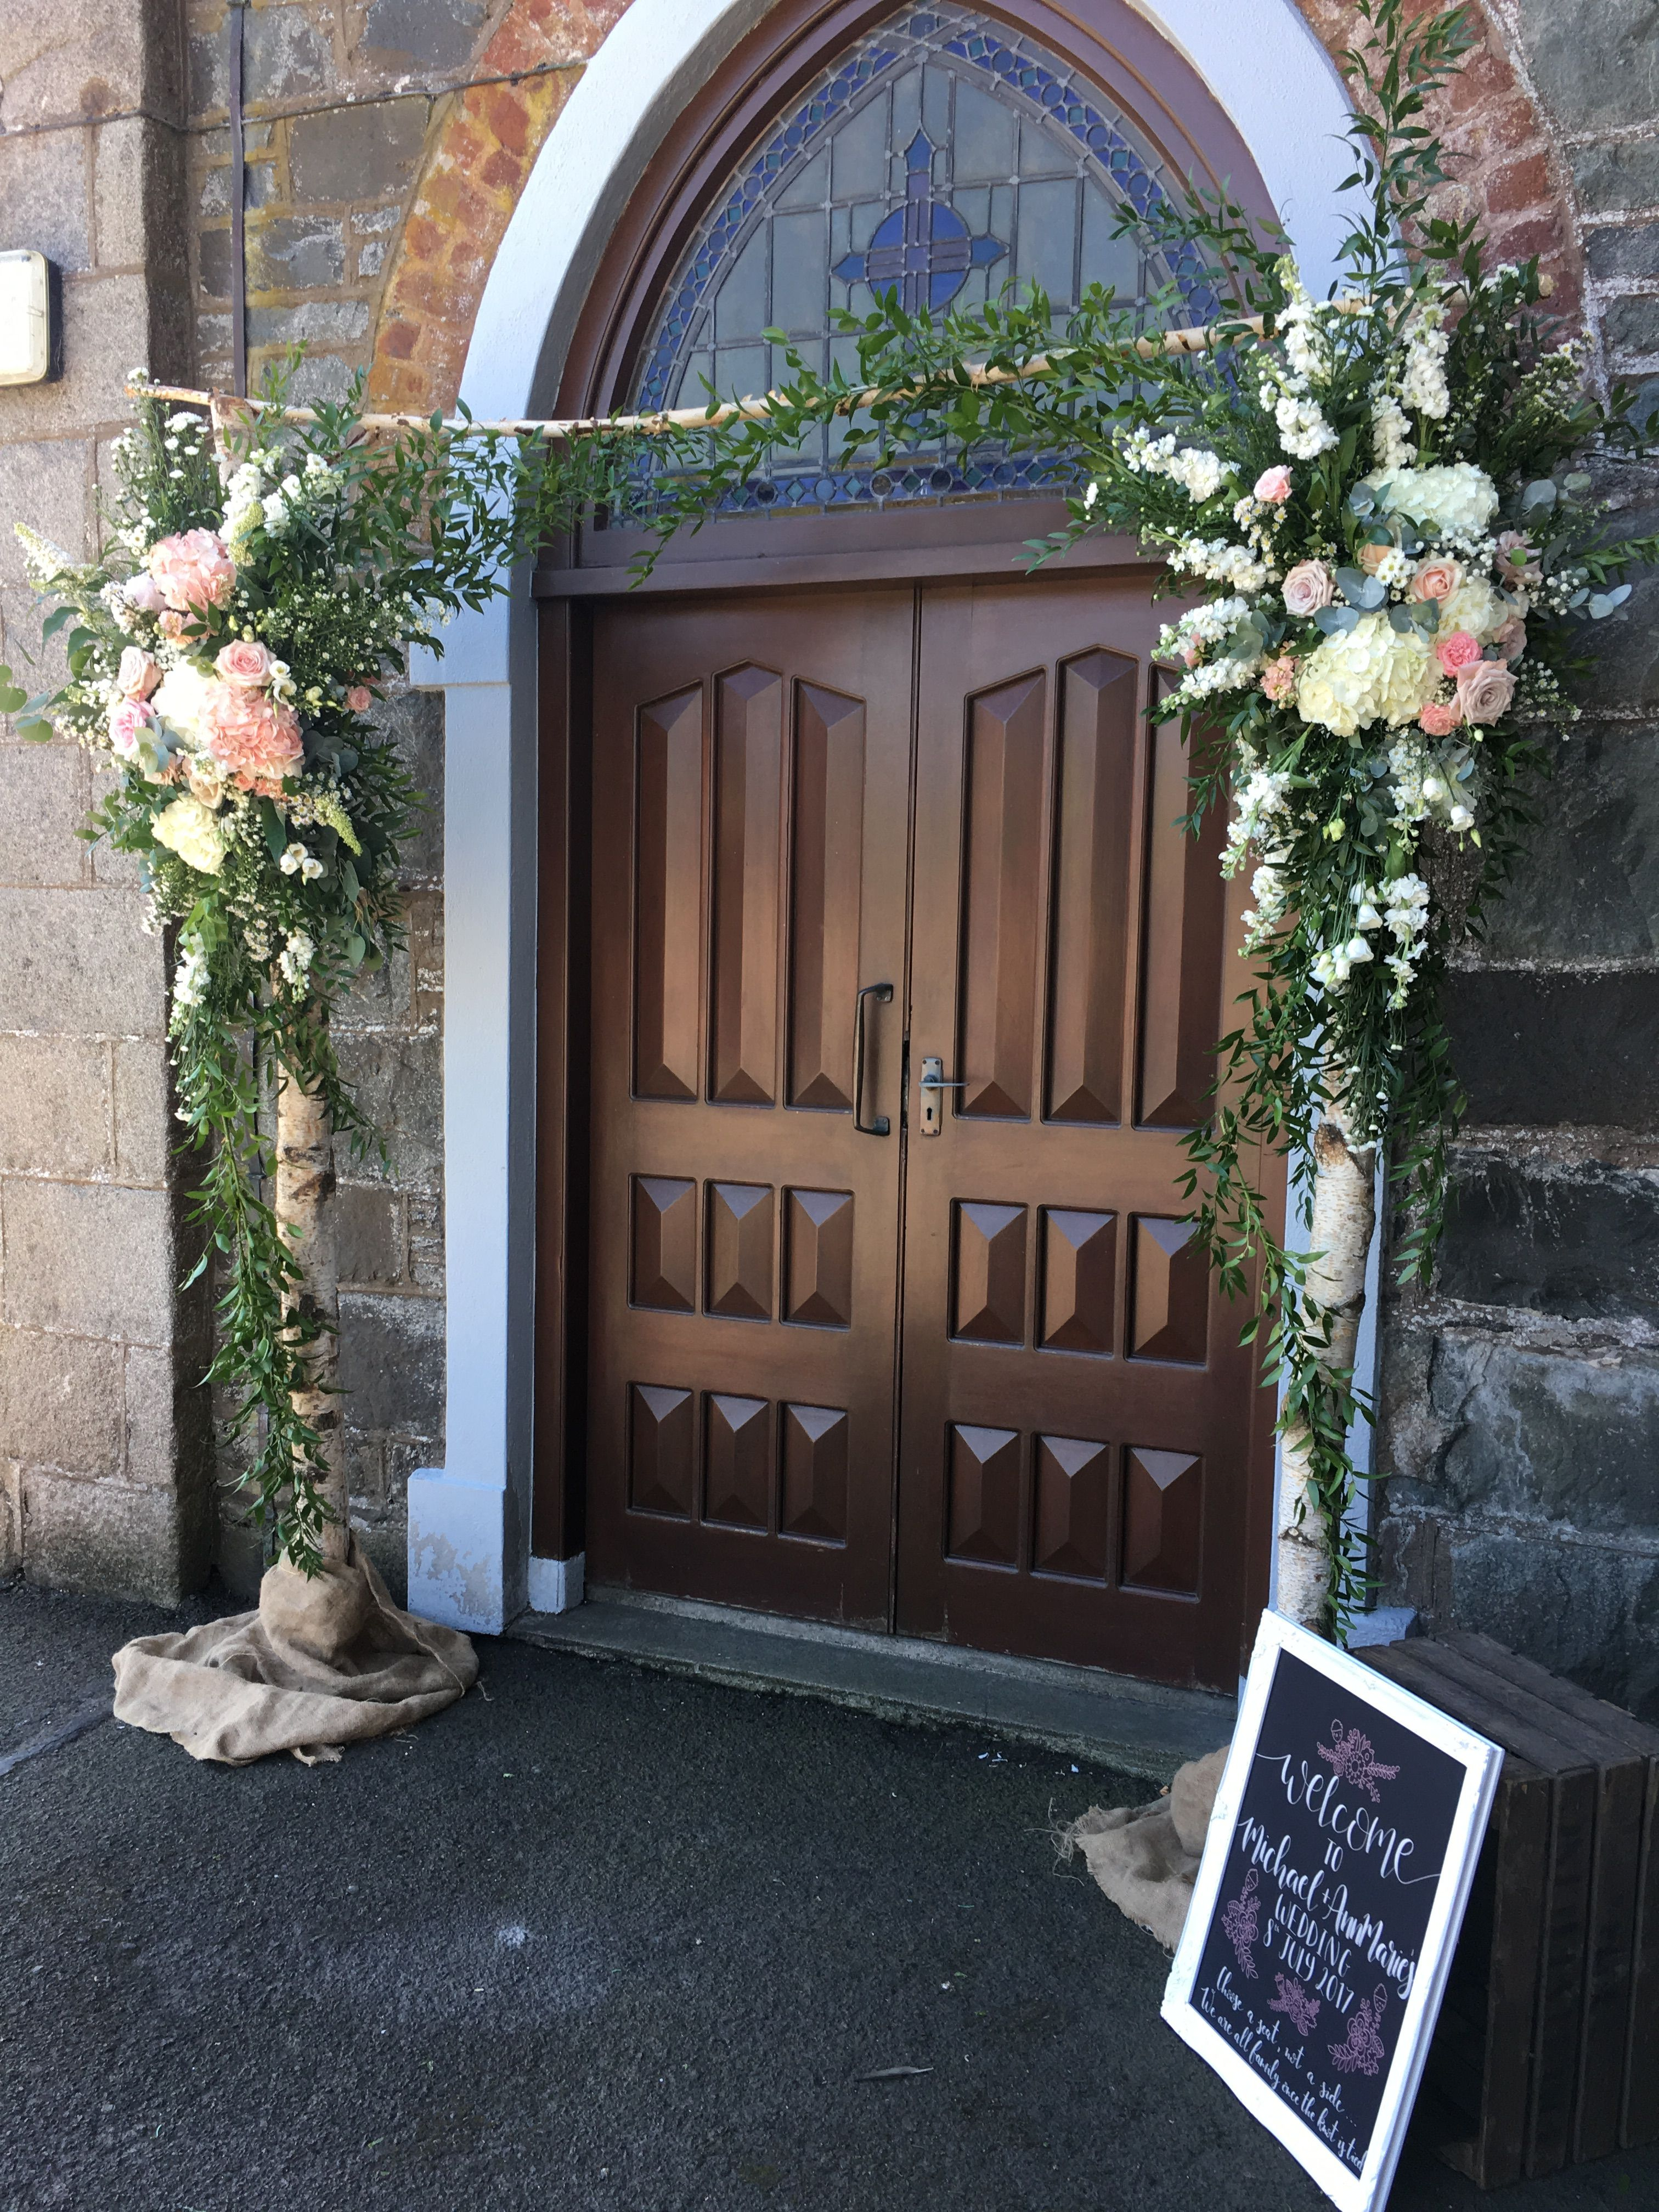 Posy Barn Flower Arch Outside Church Church Entrance Decorations